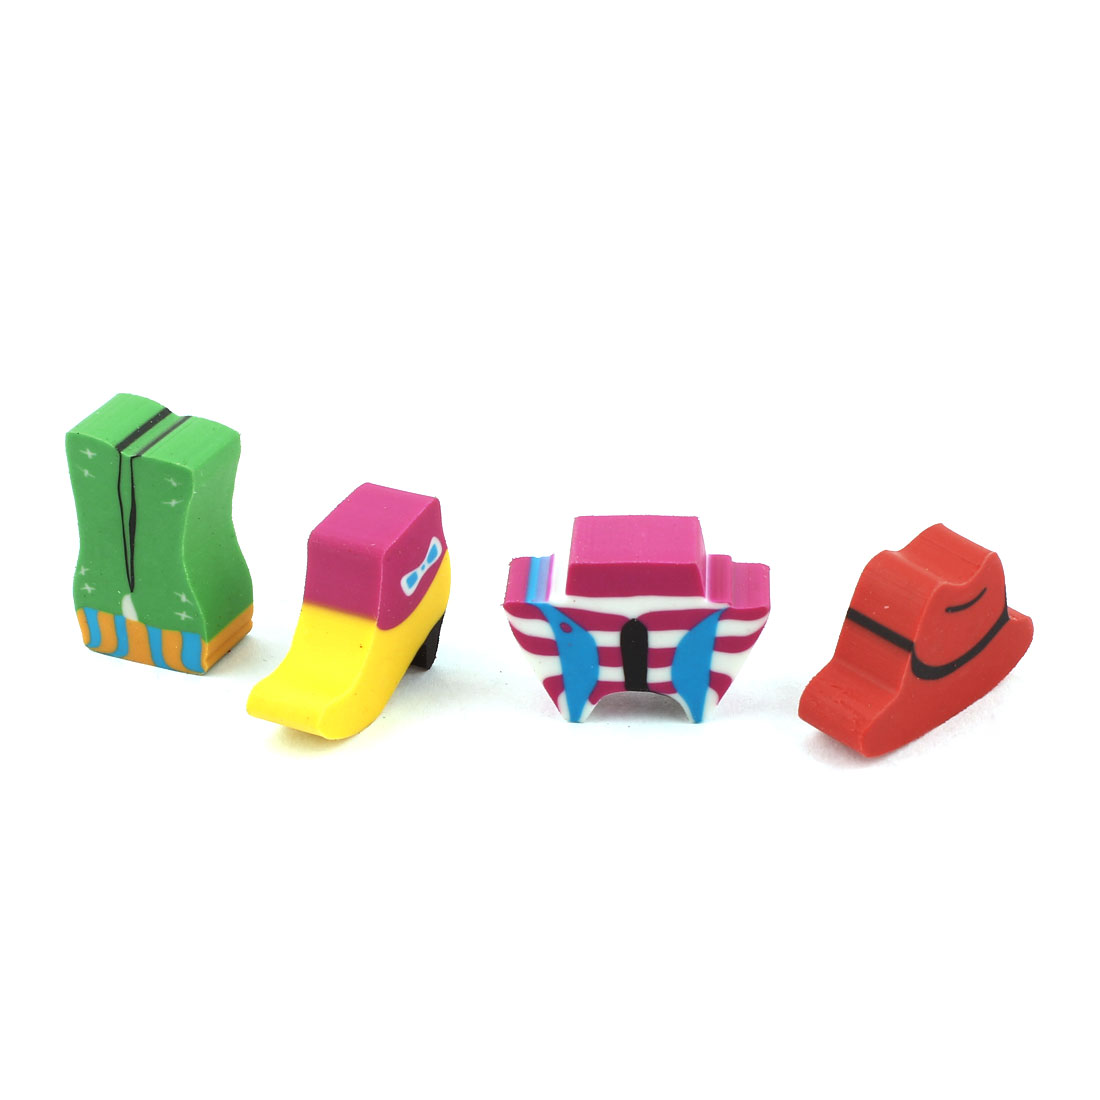 4 Pcs Green Red Yellow Cartoon Design Rubber Erasers Set for Student